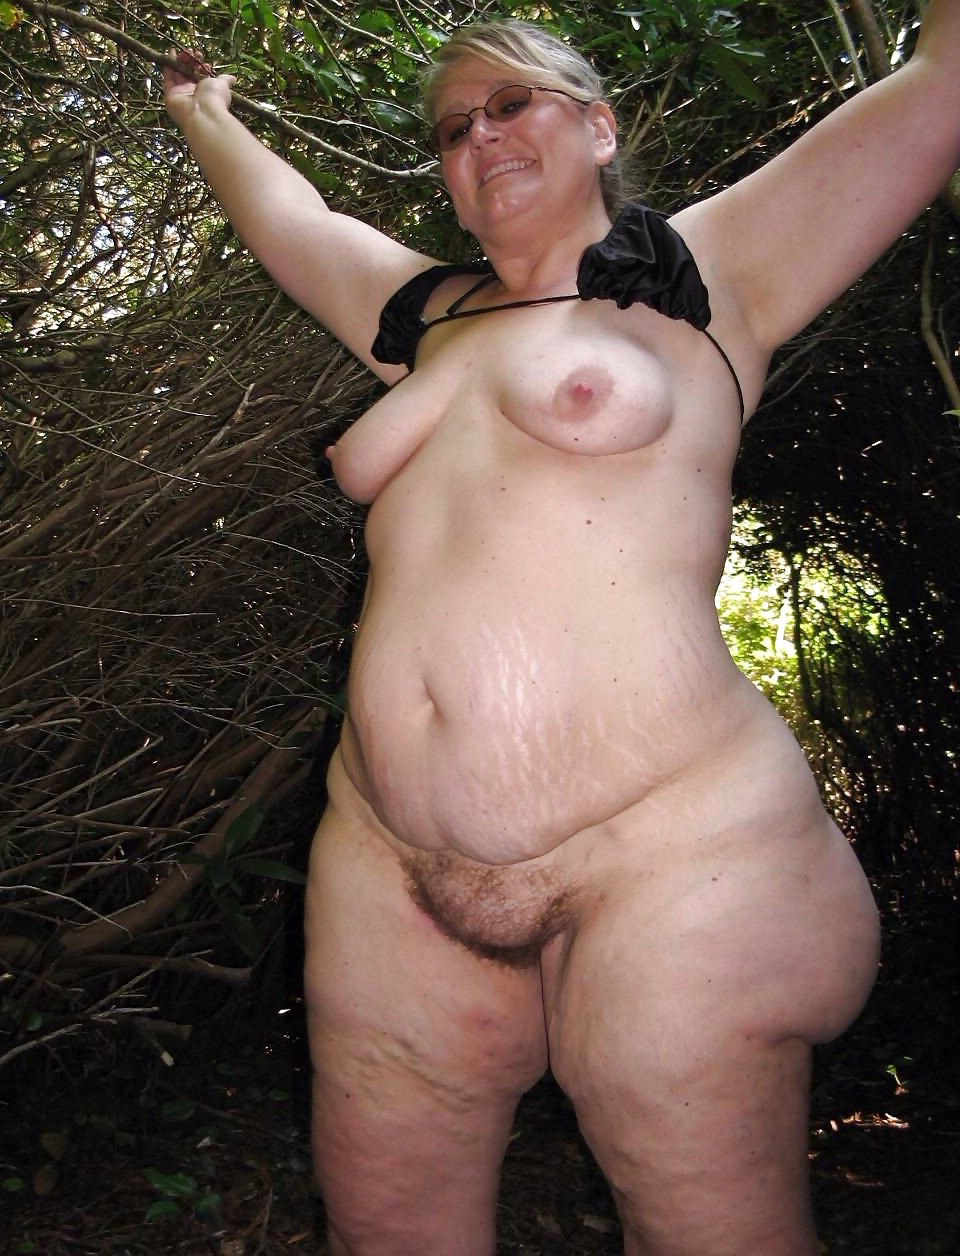 Pictures chubby granny 56 Photos